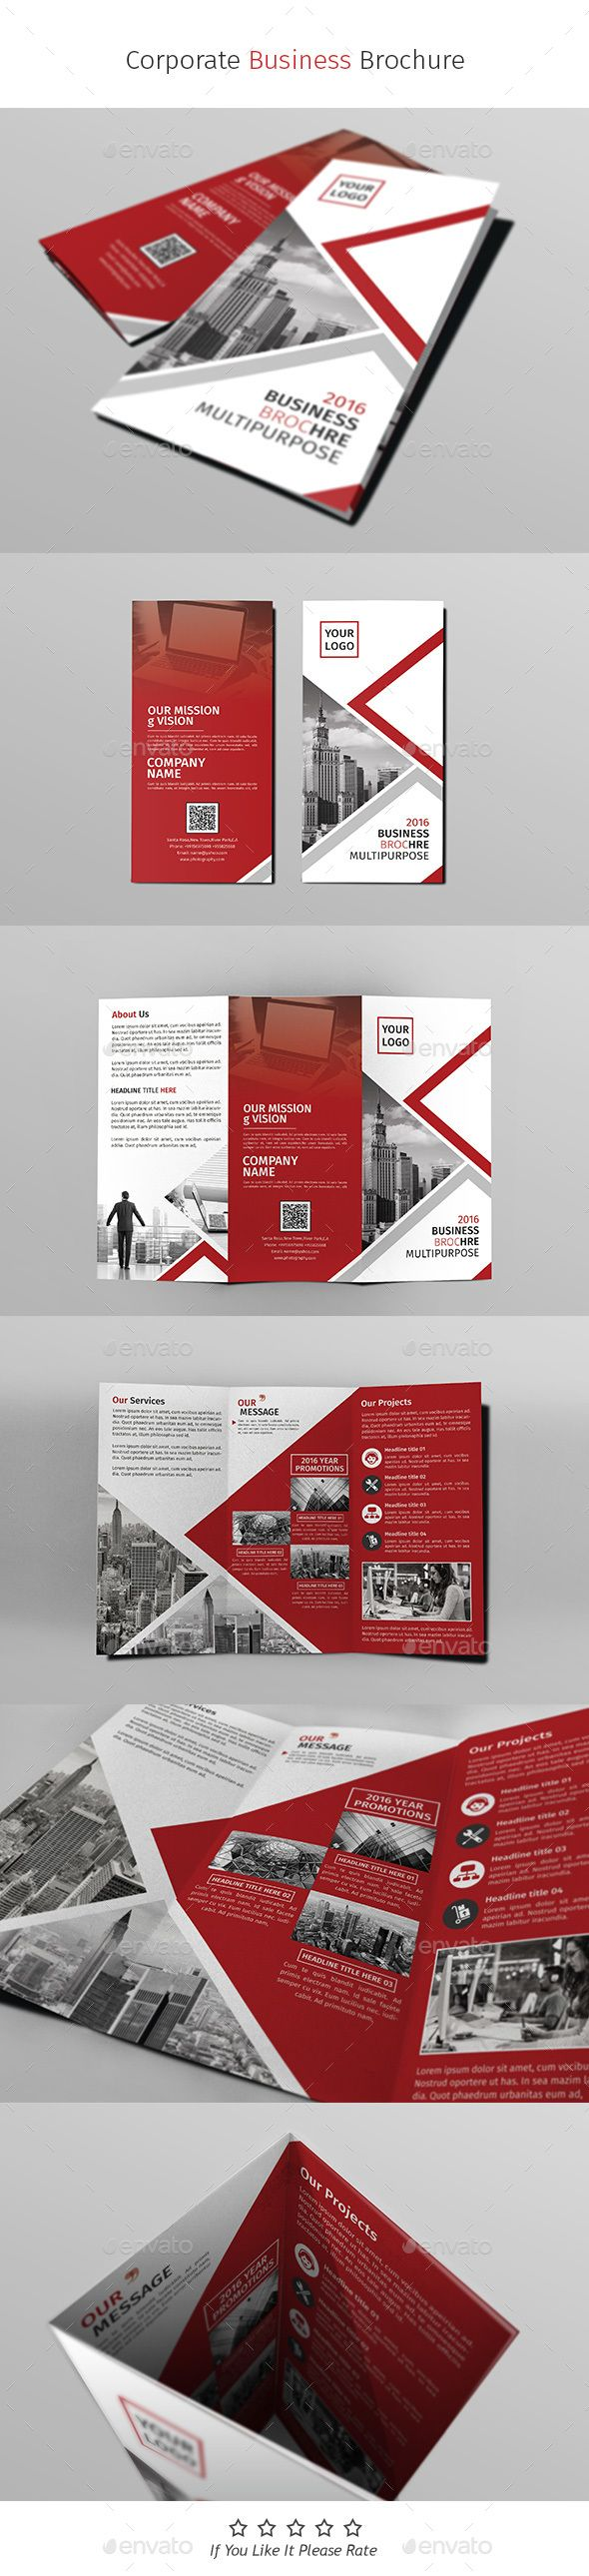 A4 Corporate Business Flyer Template PSD #design Download: http://graphicriver.net/item/a4-corporate-business-flyer-template-vol-05/13854843?ref=ksioks